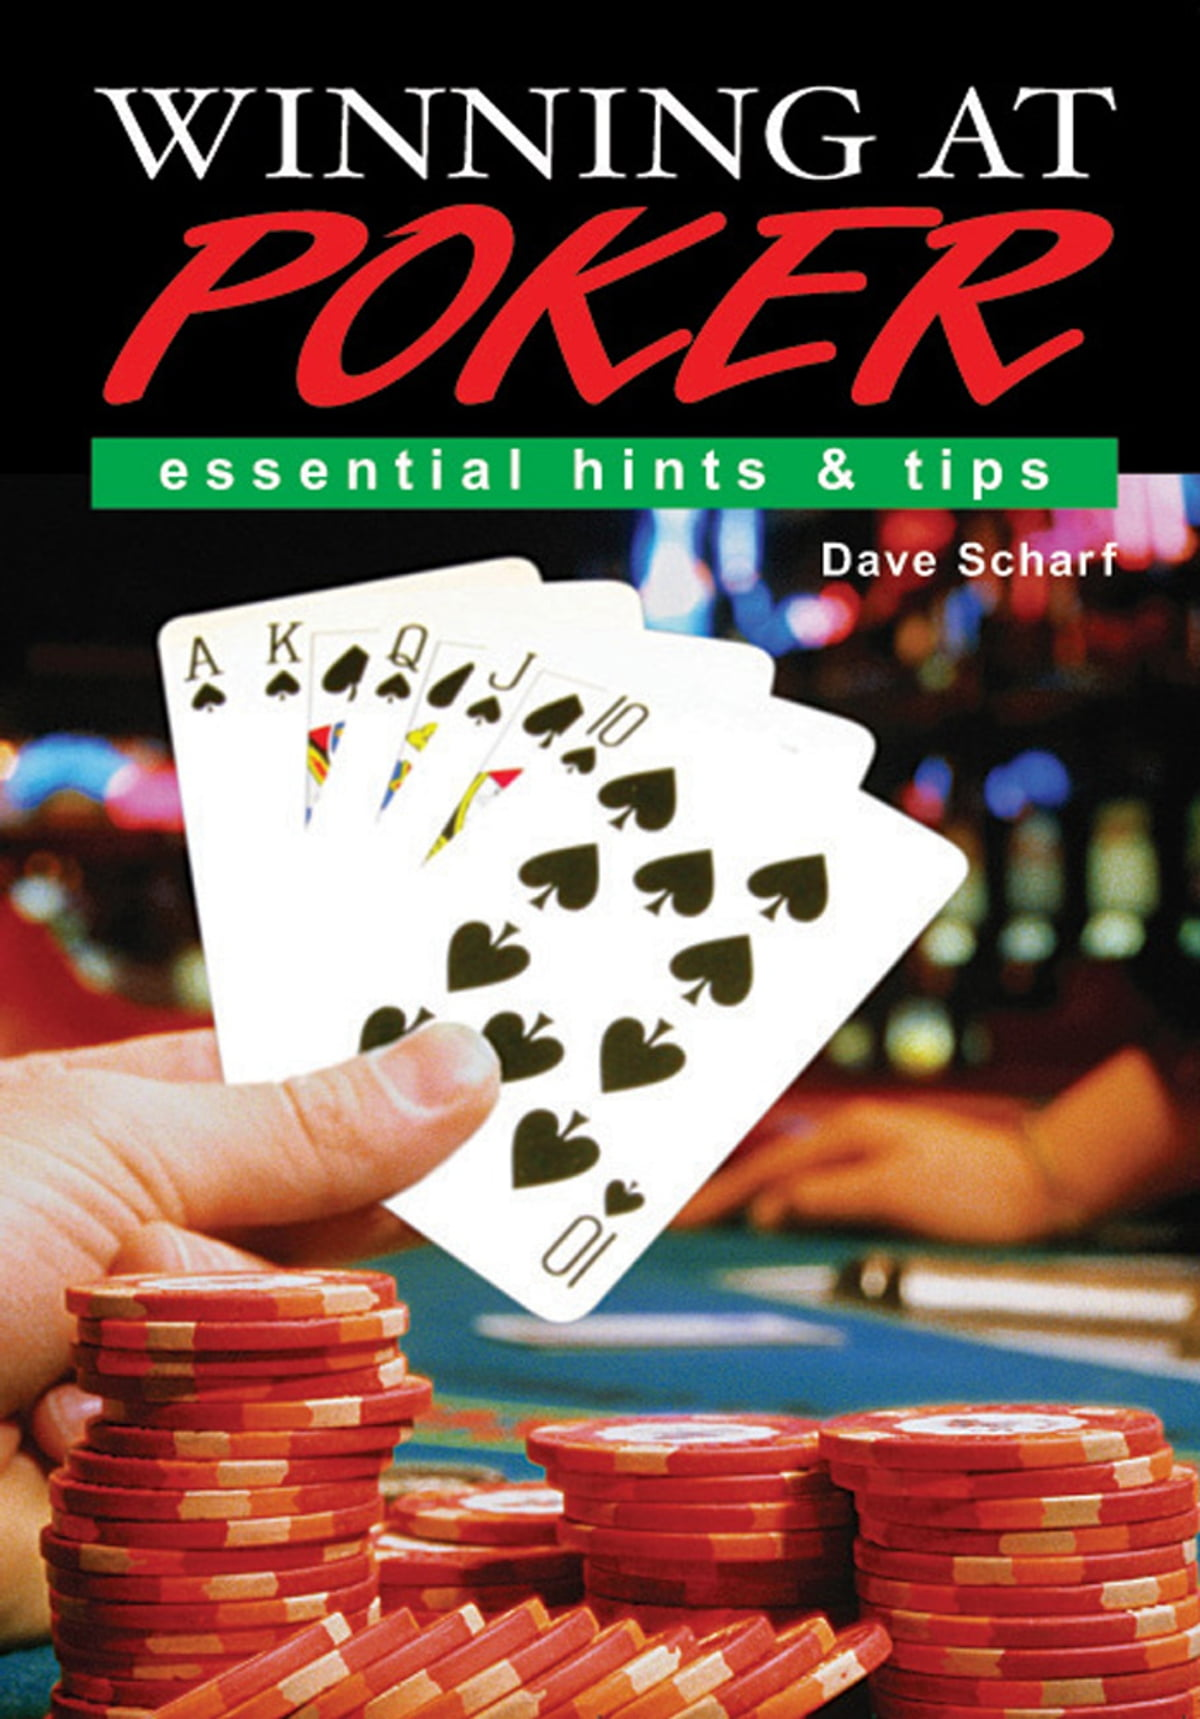 italiano of poker games book tells caros